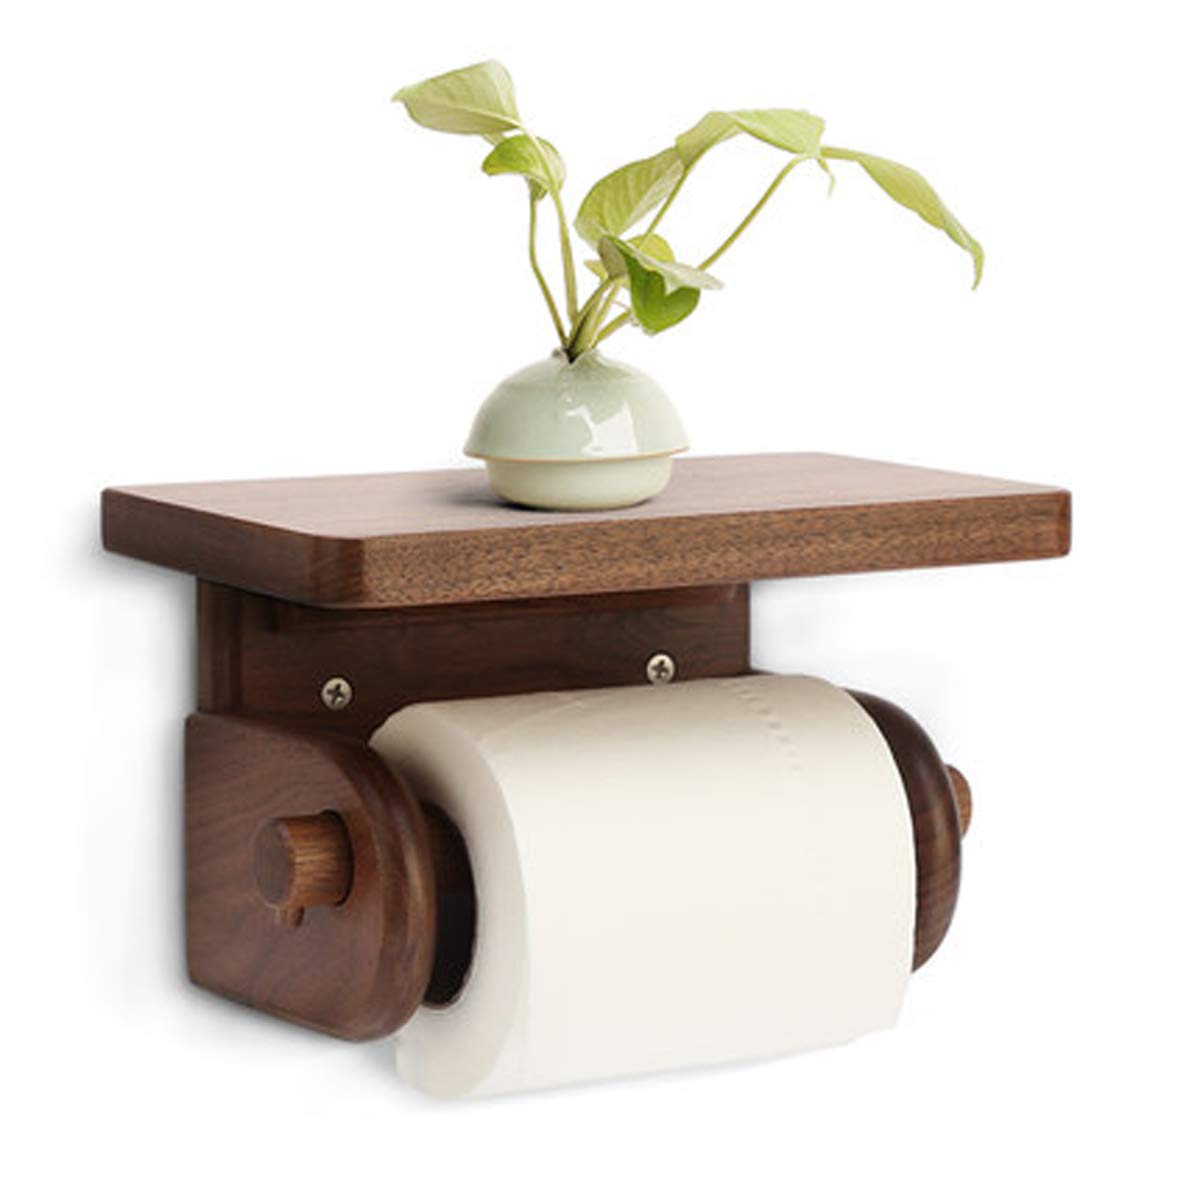 Q&F Toilet Paper Holder,Bathroom Tissue Holder With Mobile Phone Storage Shelf For Bathroom Storage,Tissue Roll Hanger-wall Mount,Punch Free-A by Q&F (Image #1)